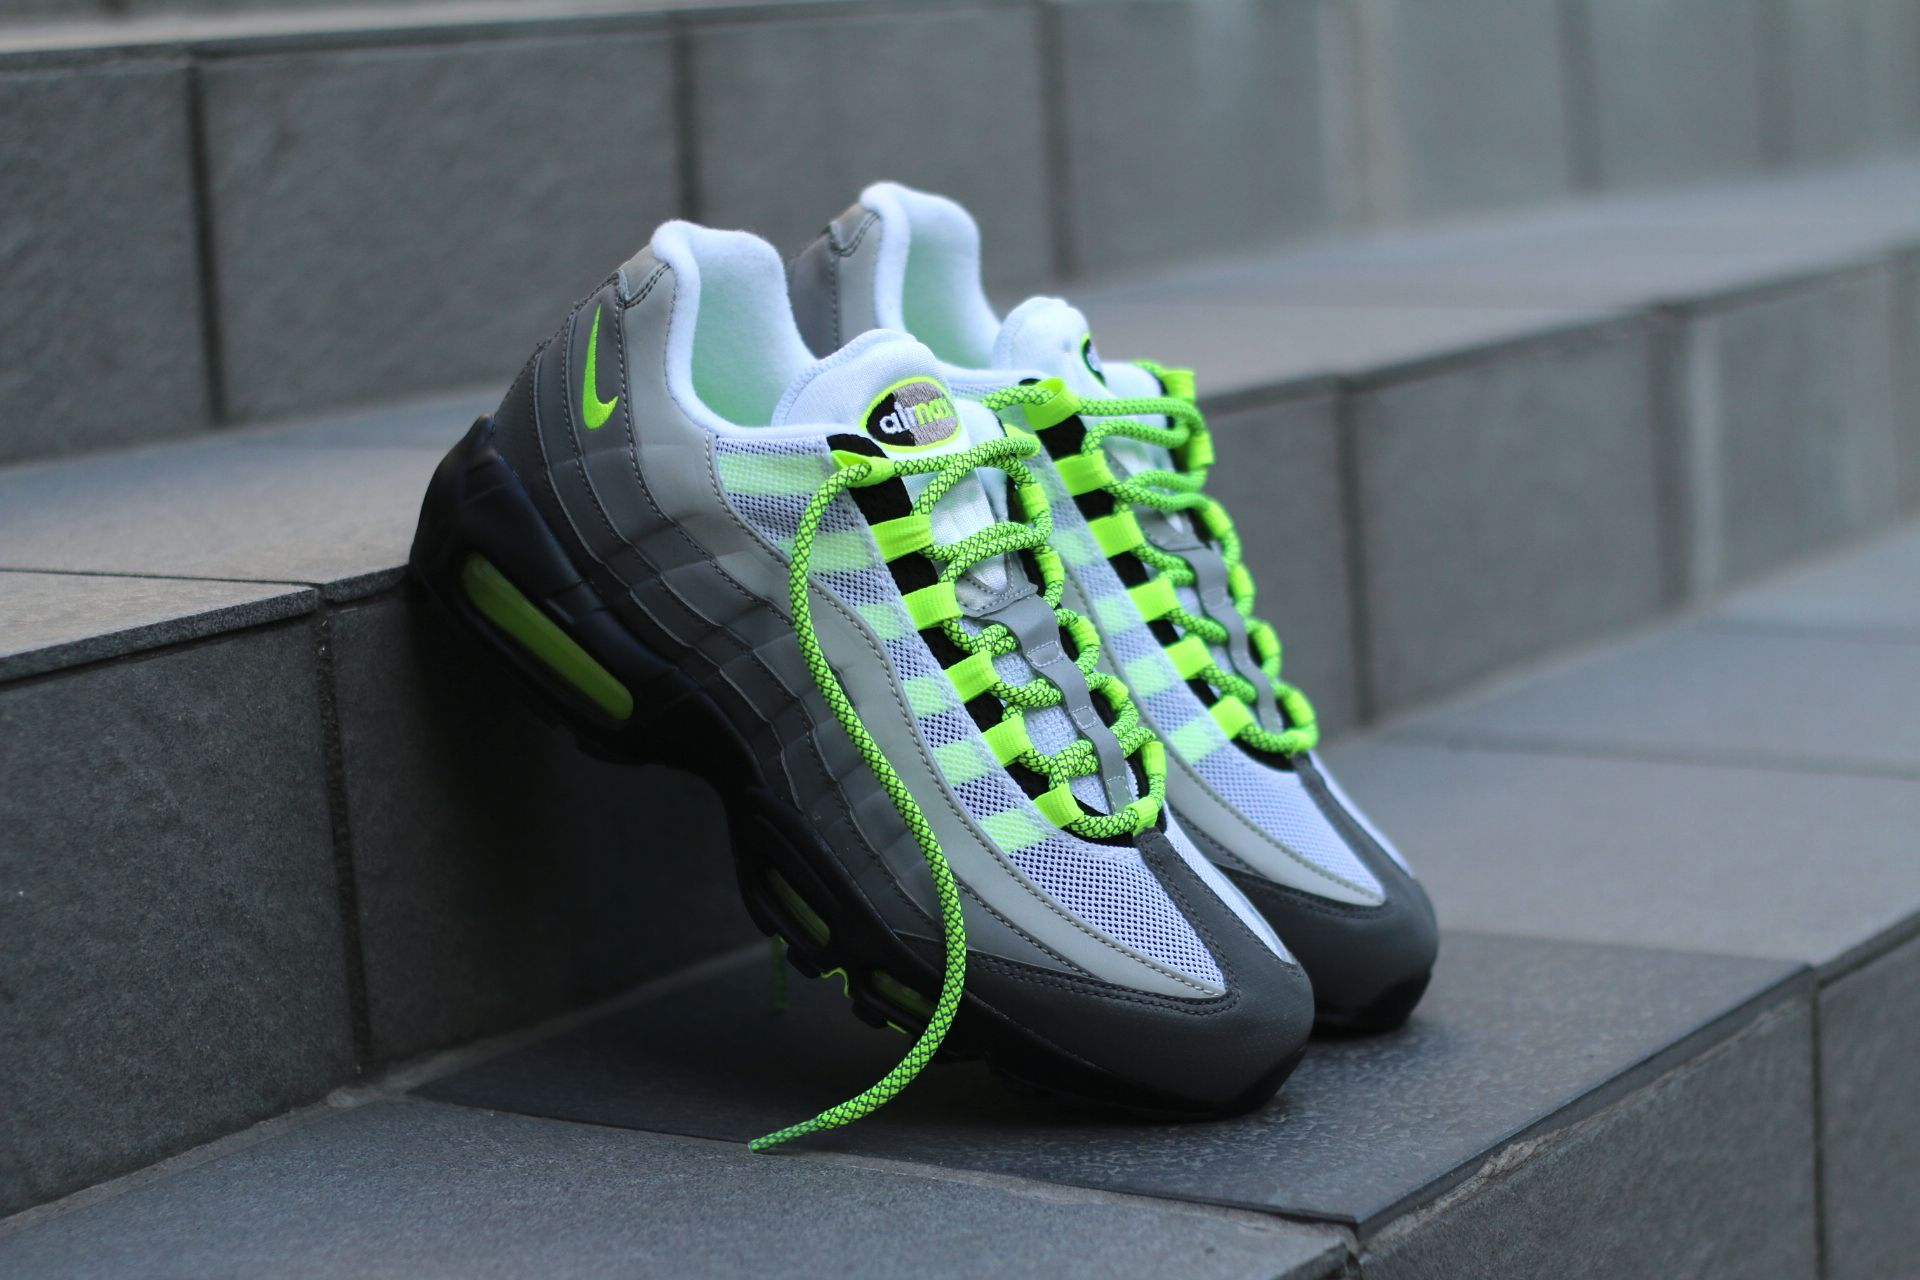 3268c43caa0 Ropes Laces UK drop Air Max 95 OG Neon Laces